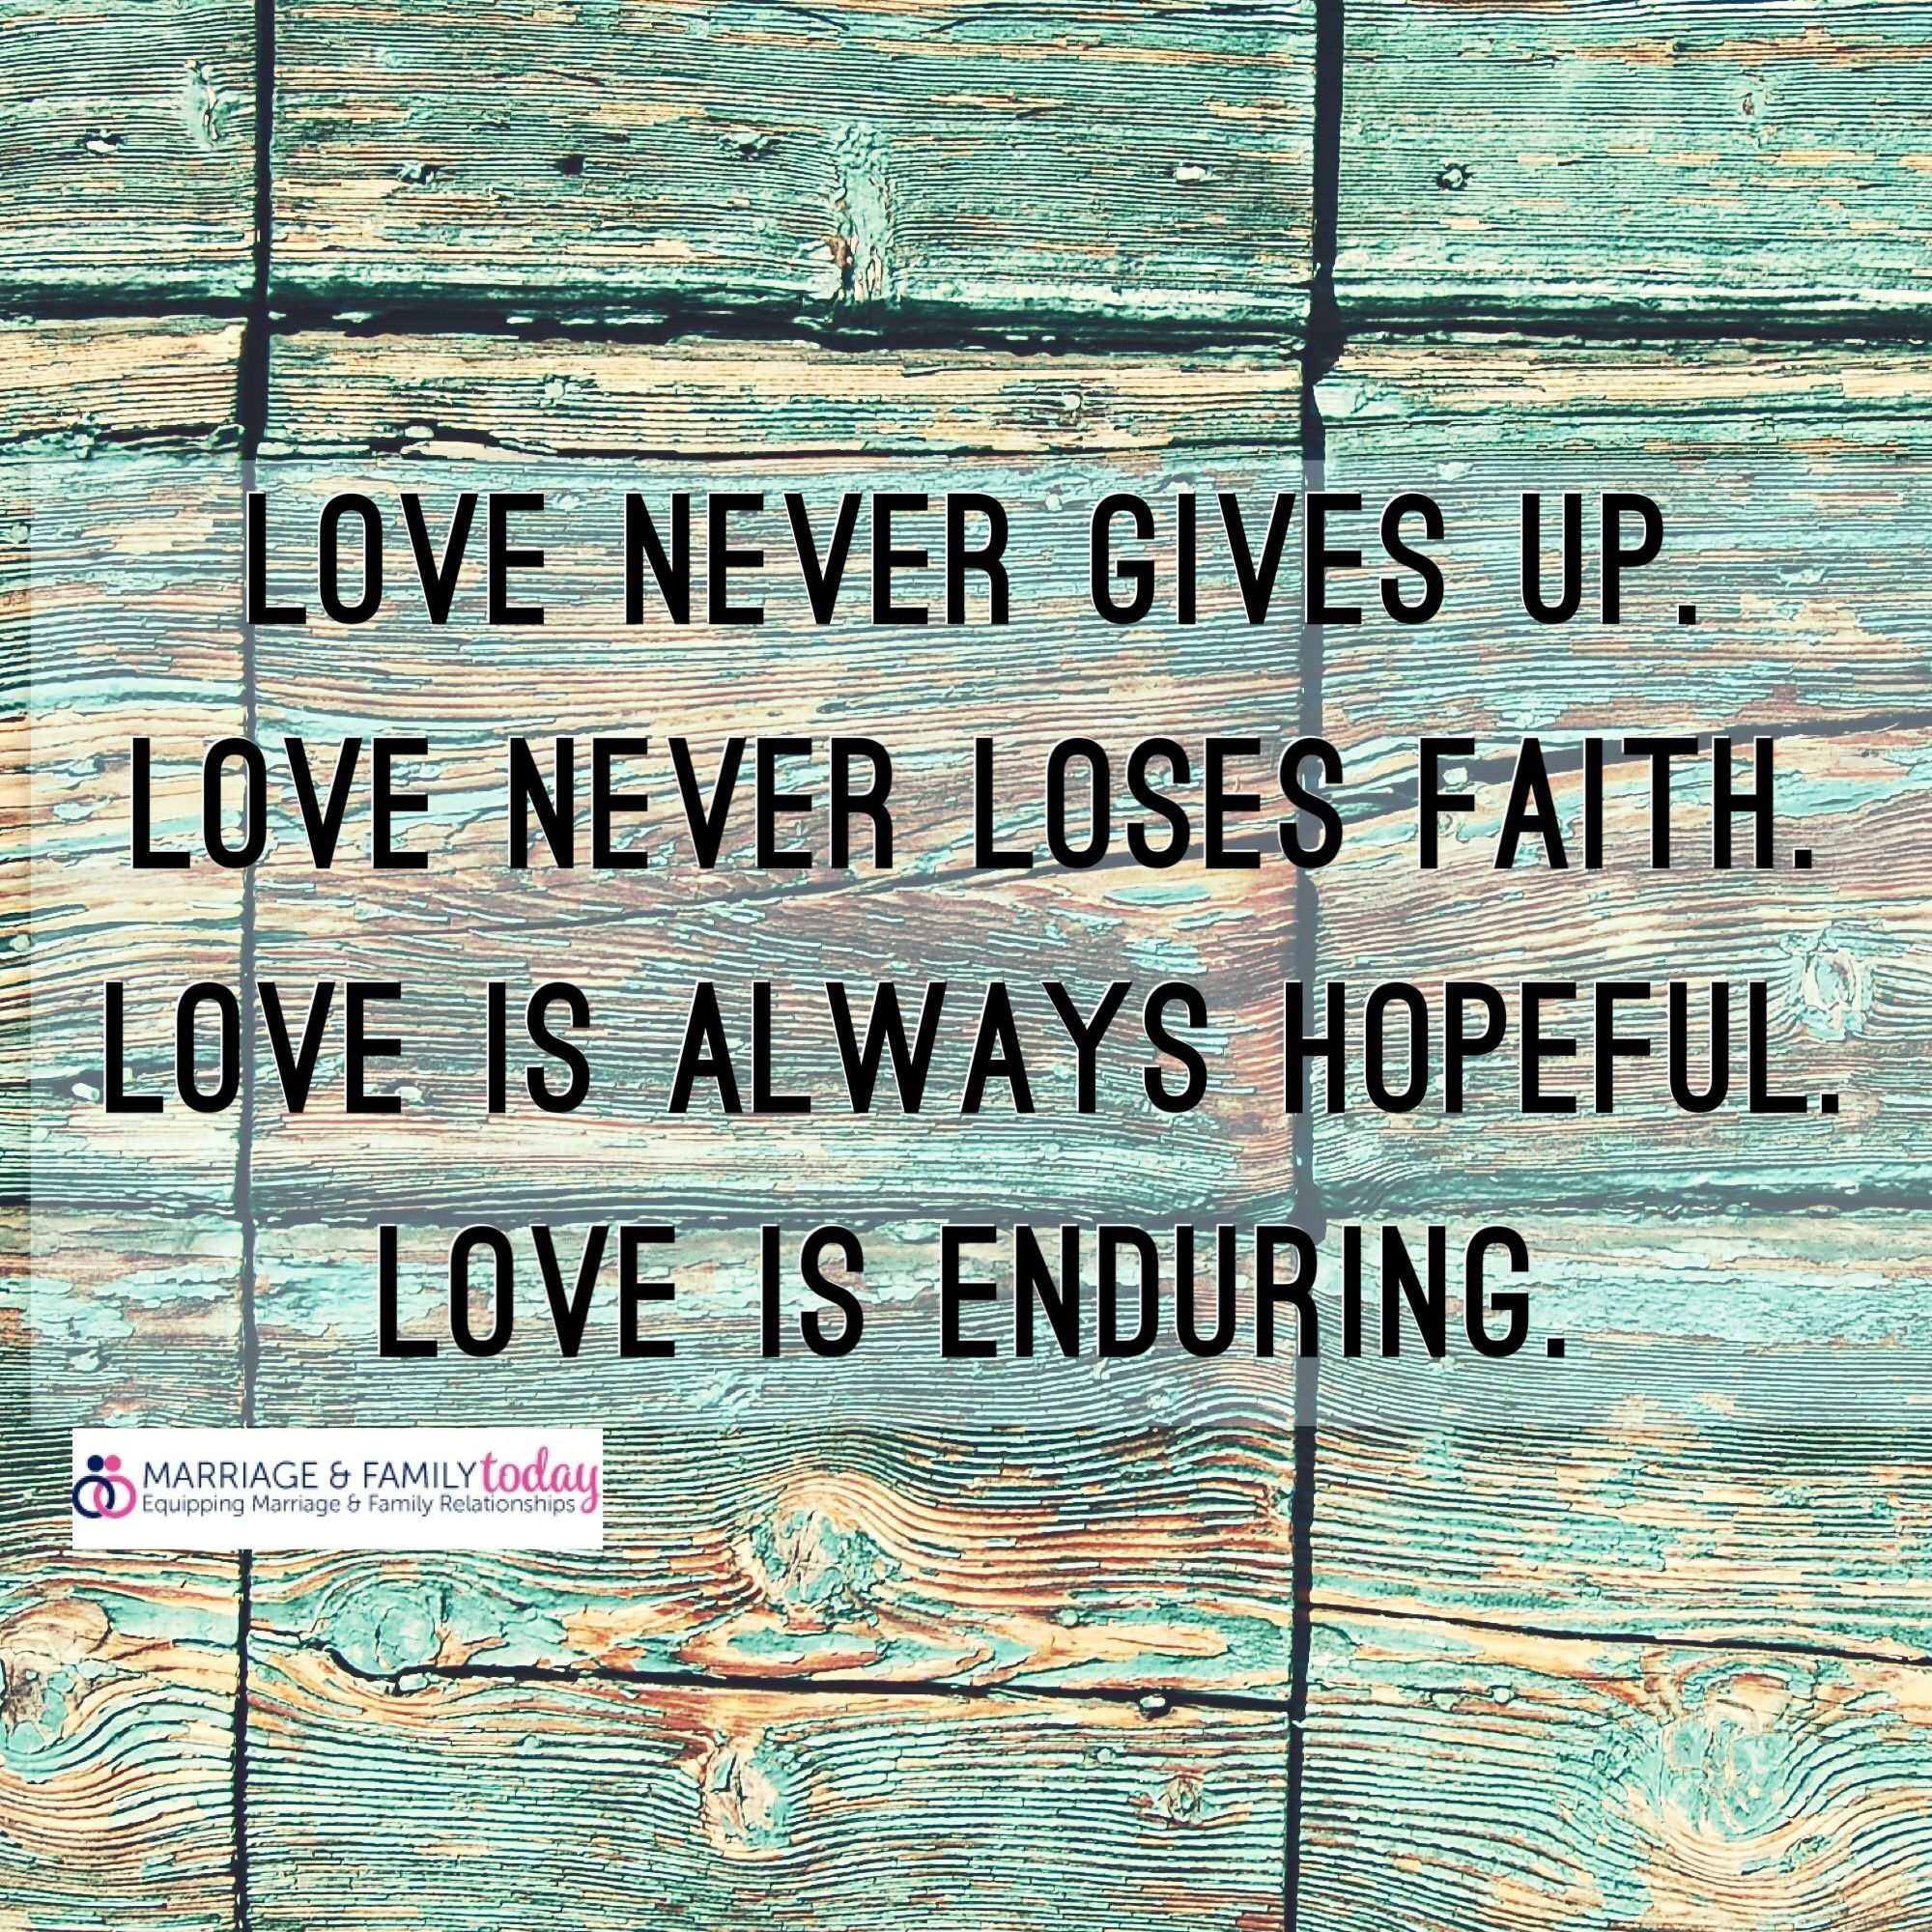 Love Never Gives Up Rriageandfamilytoday